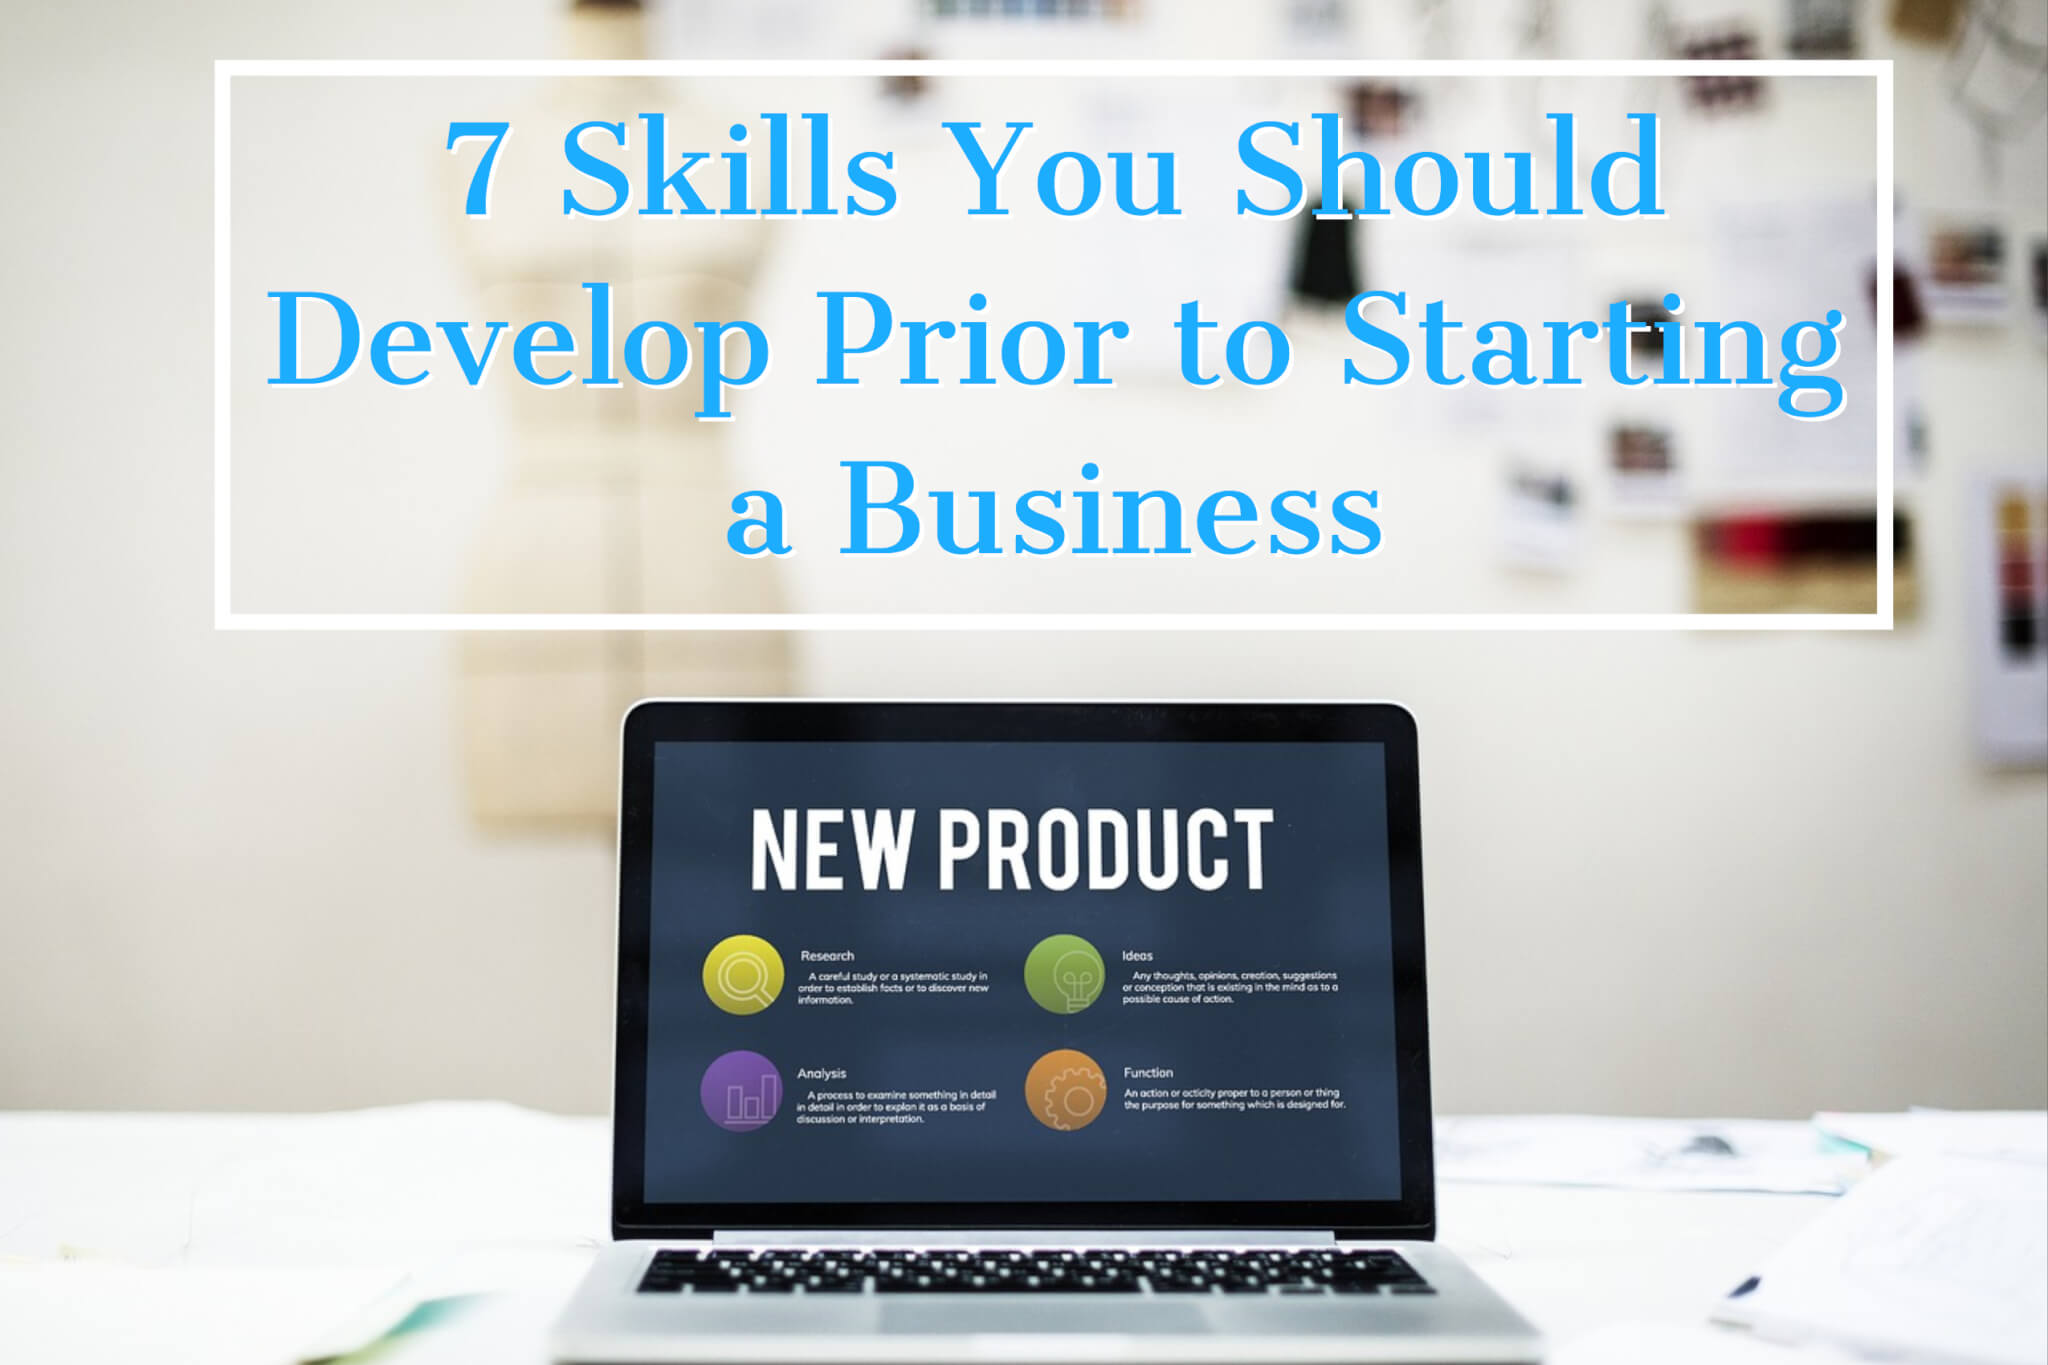 7 Skills You Should Develop Prior to Starting a Business